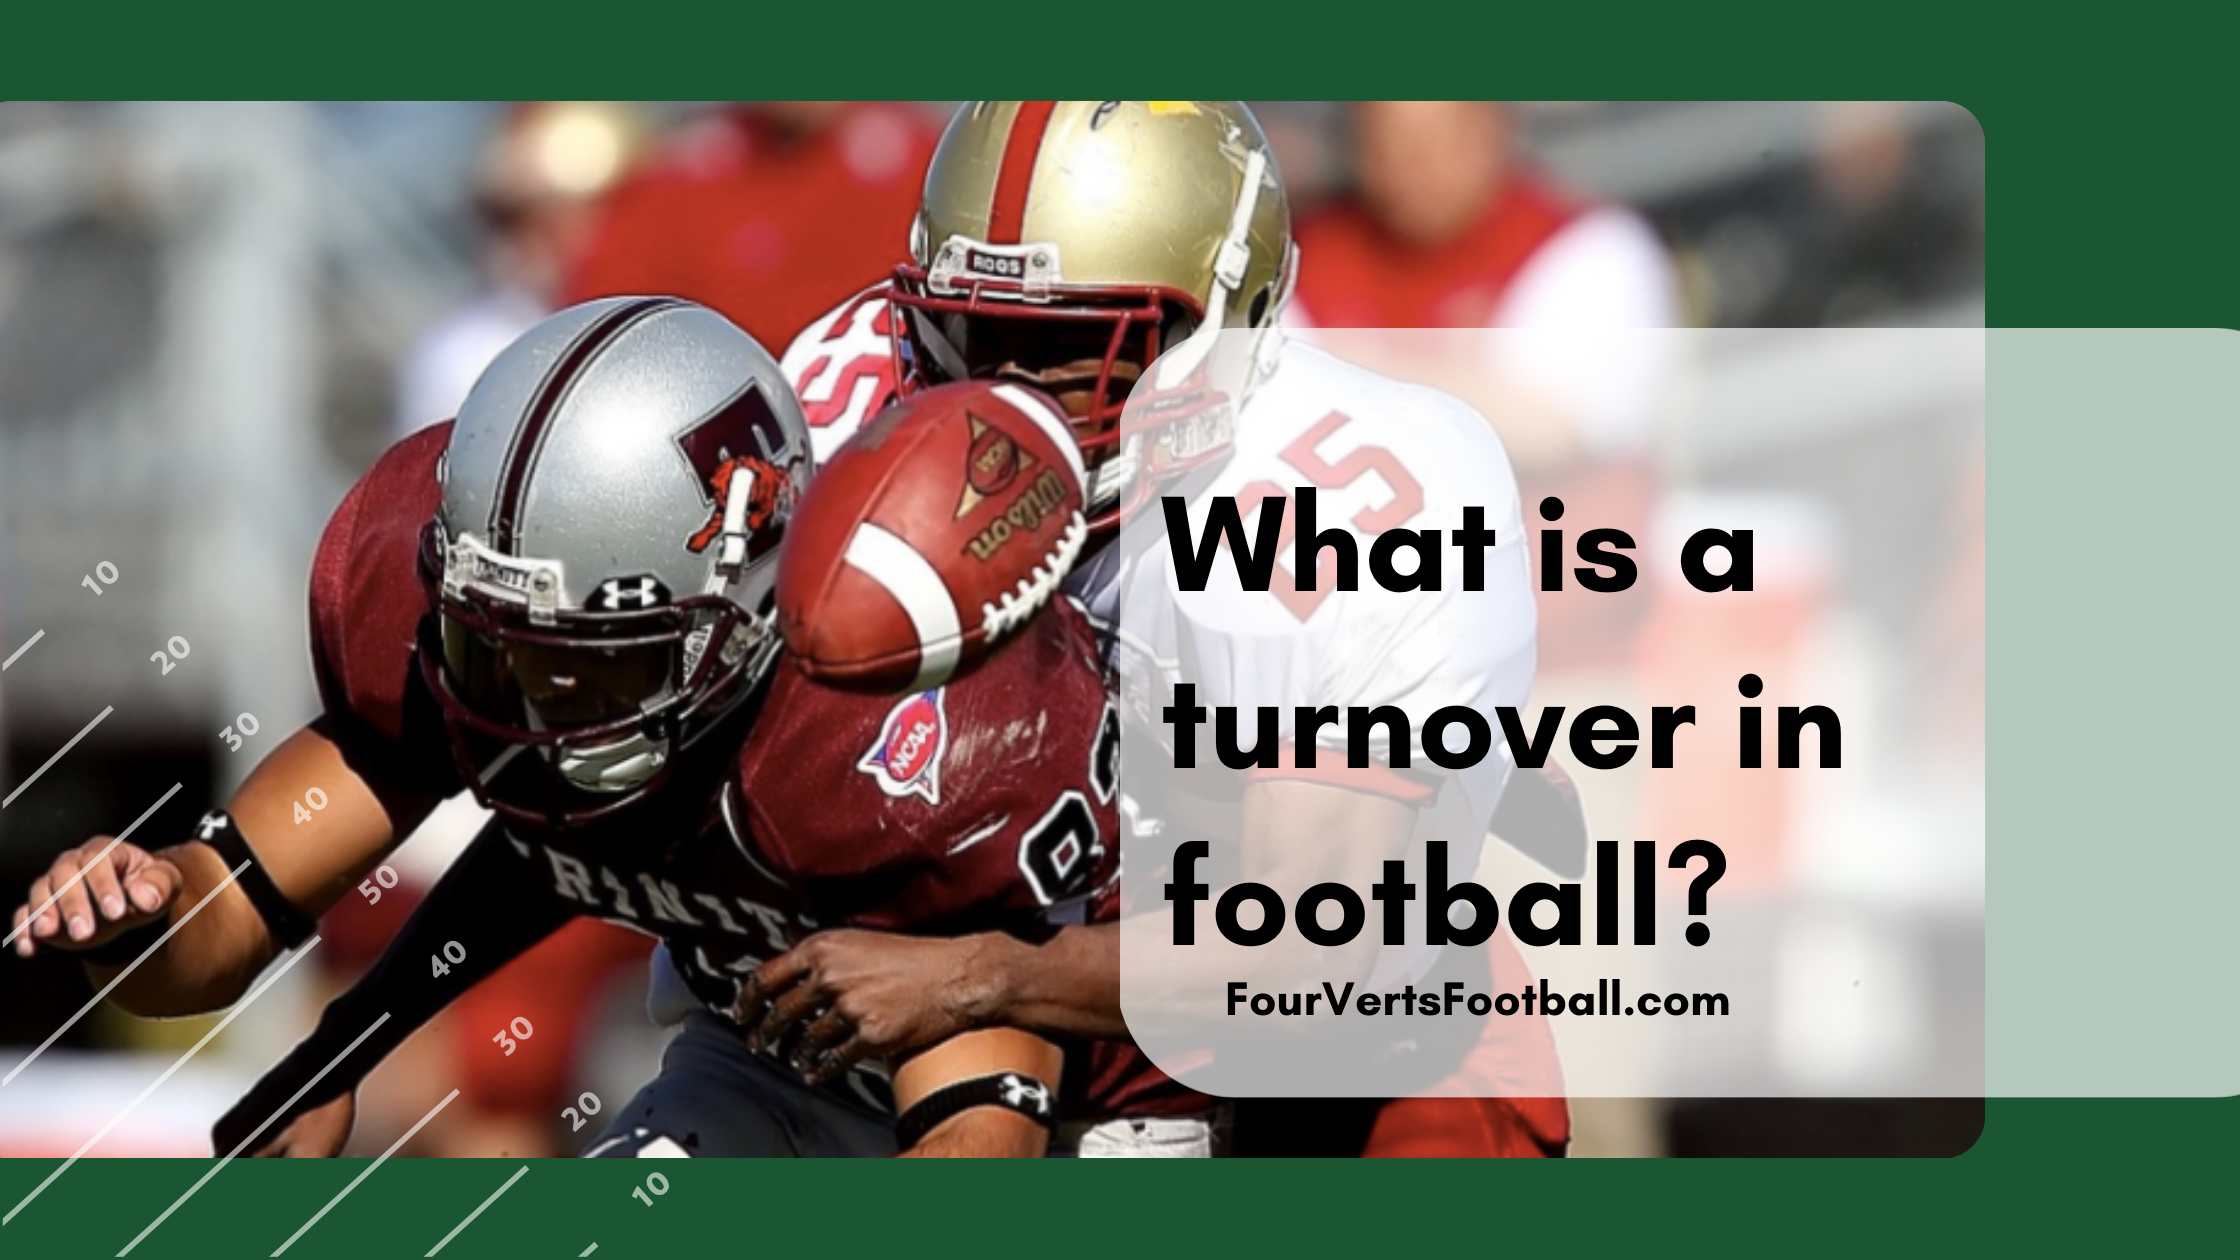 turnover in football